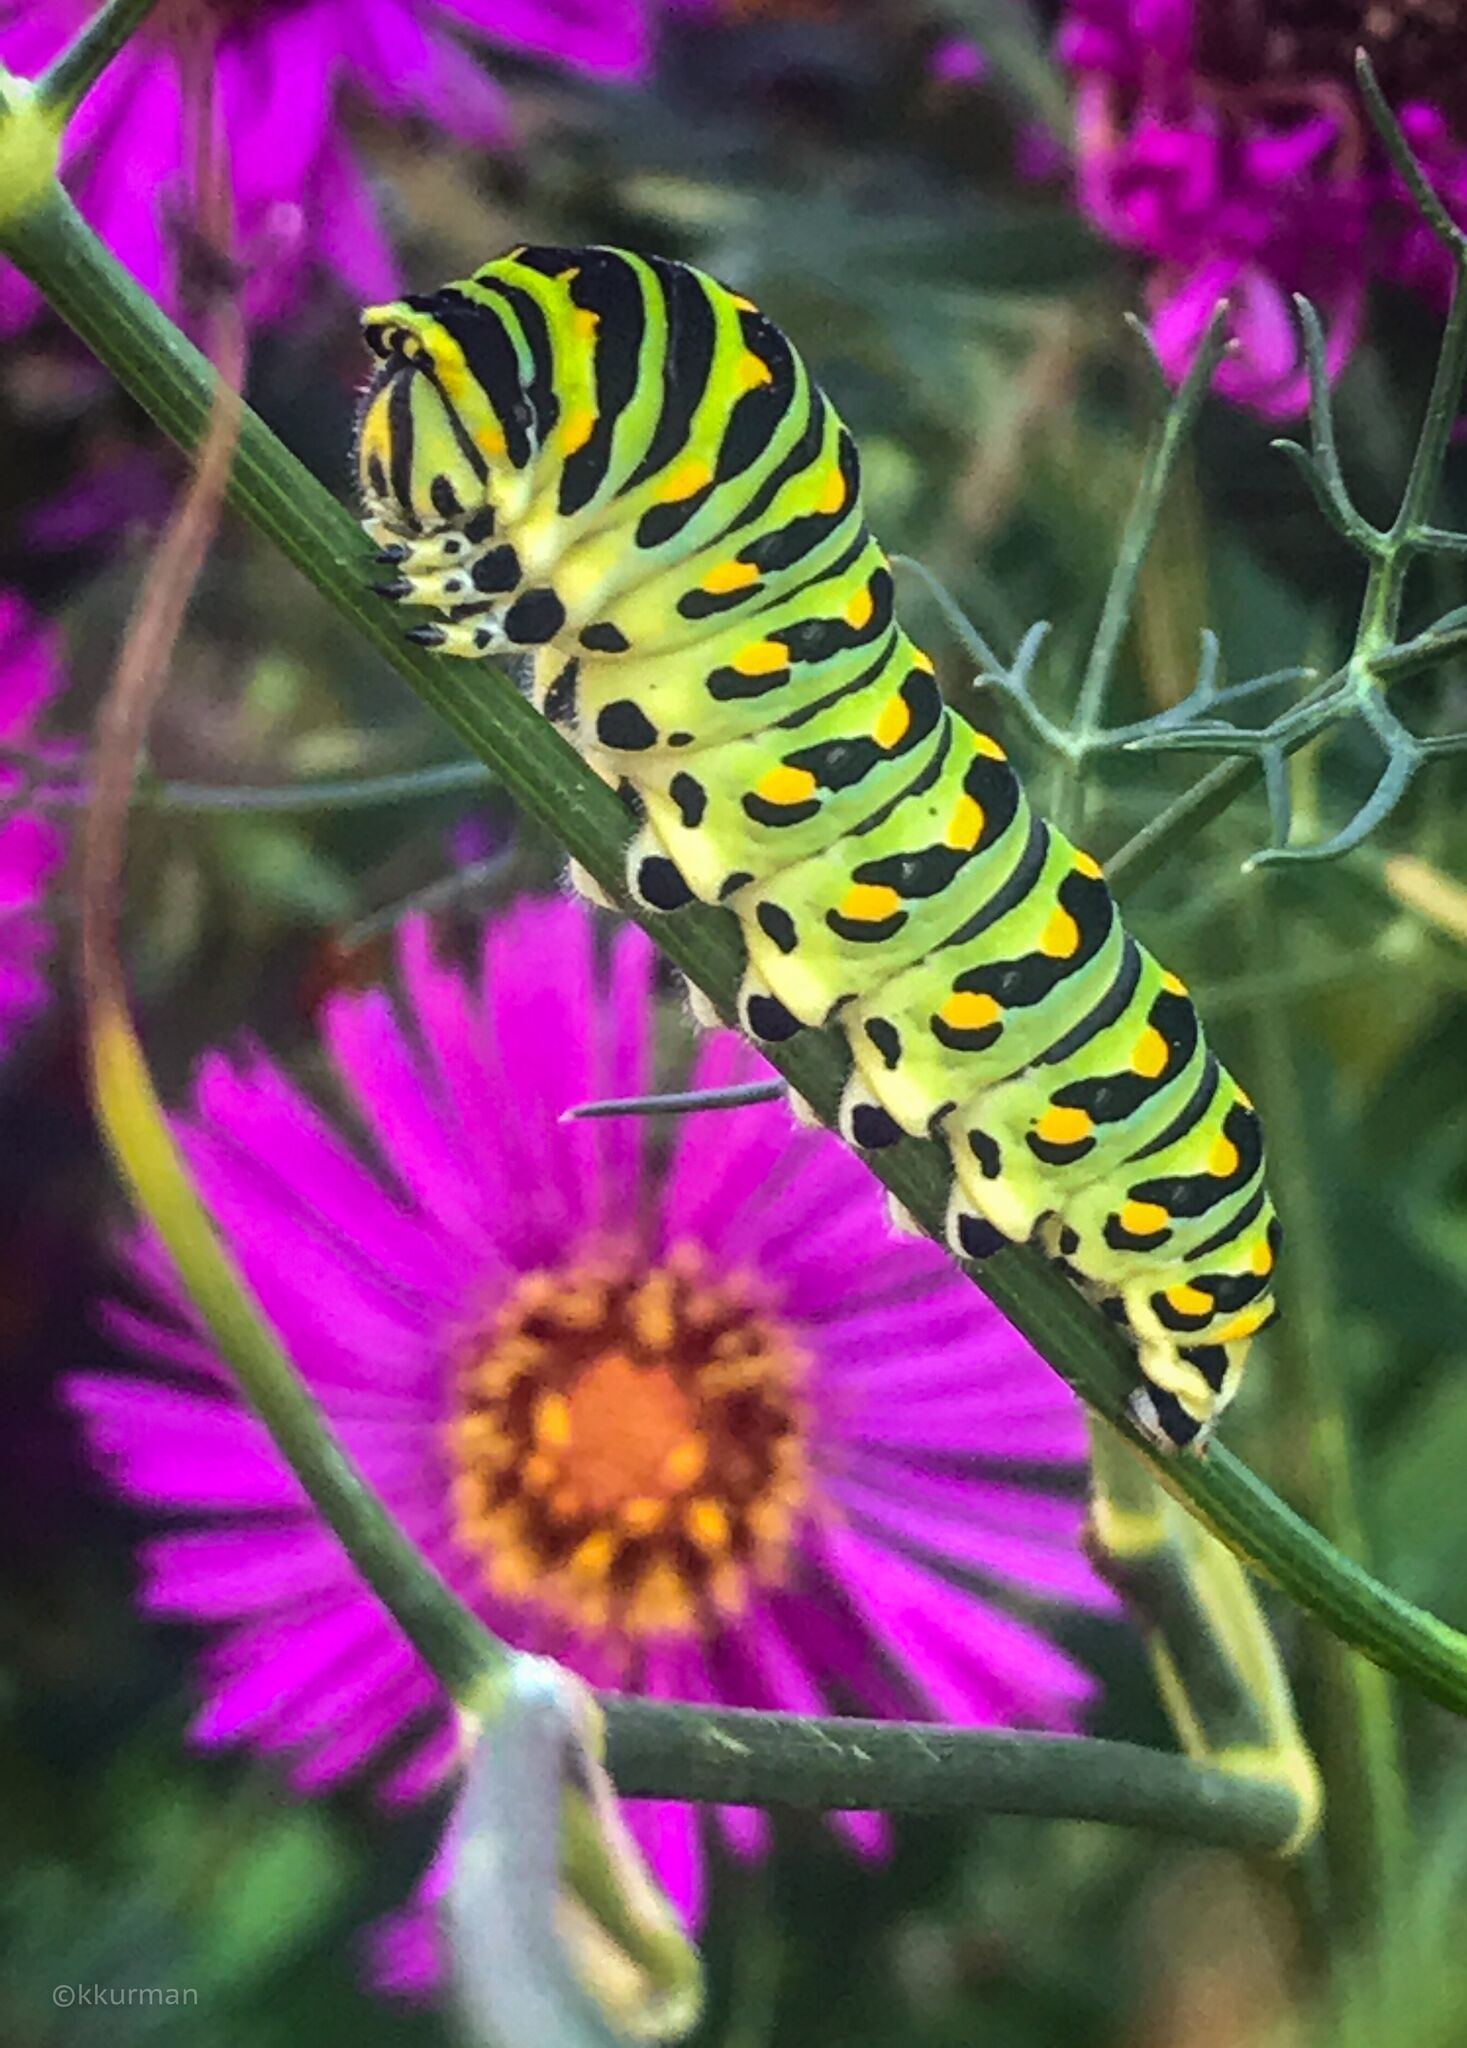 Monarch caterpillars like to eat the Fennel, we planted Butterfly plants, Aesclepias incarnata, nearby to attract them